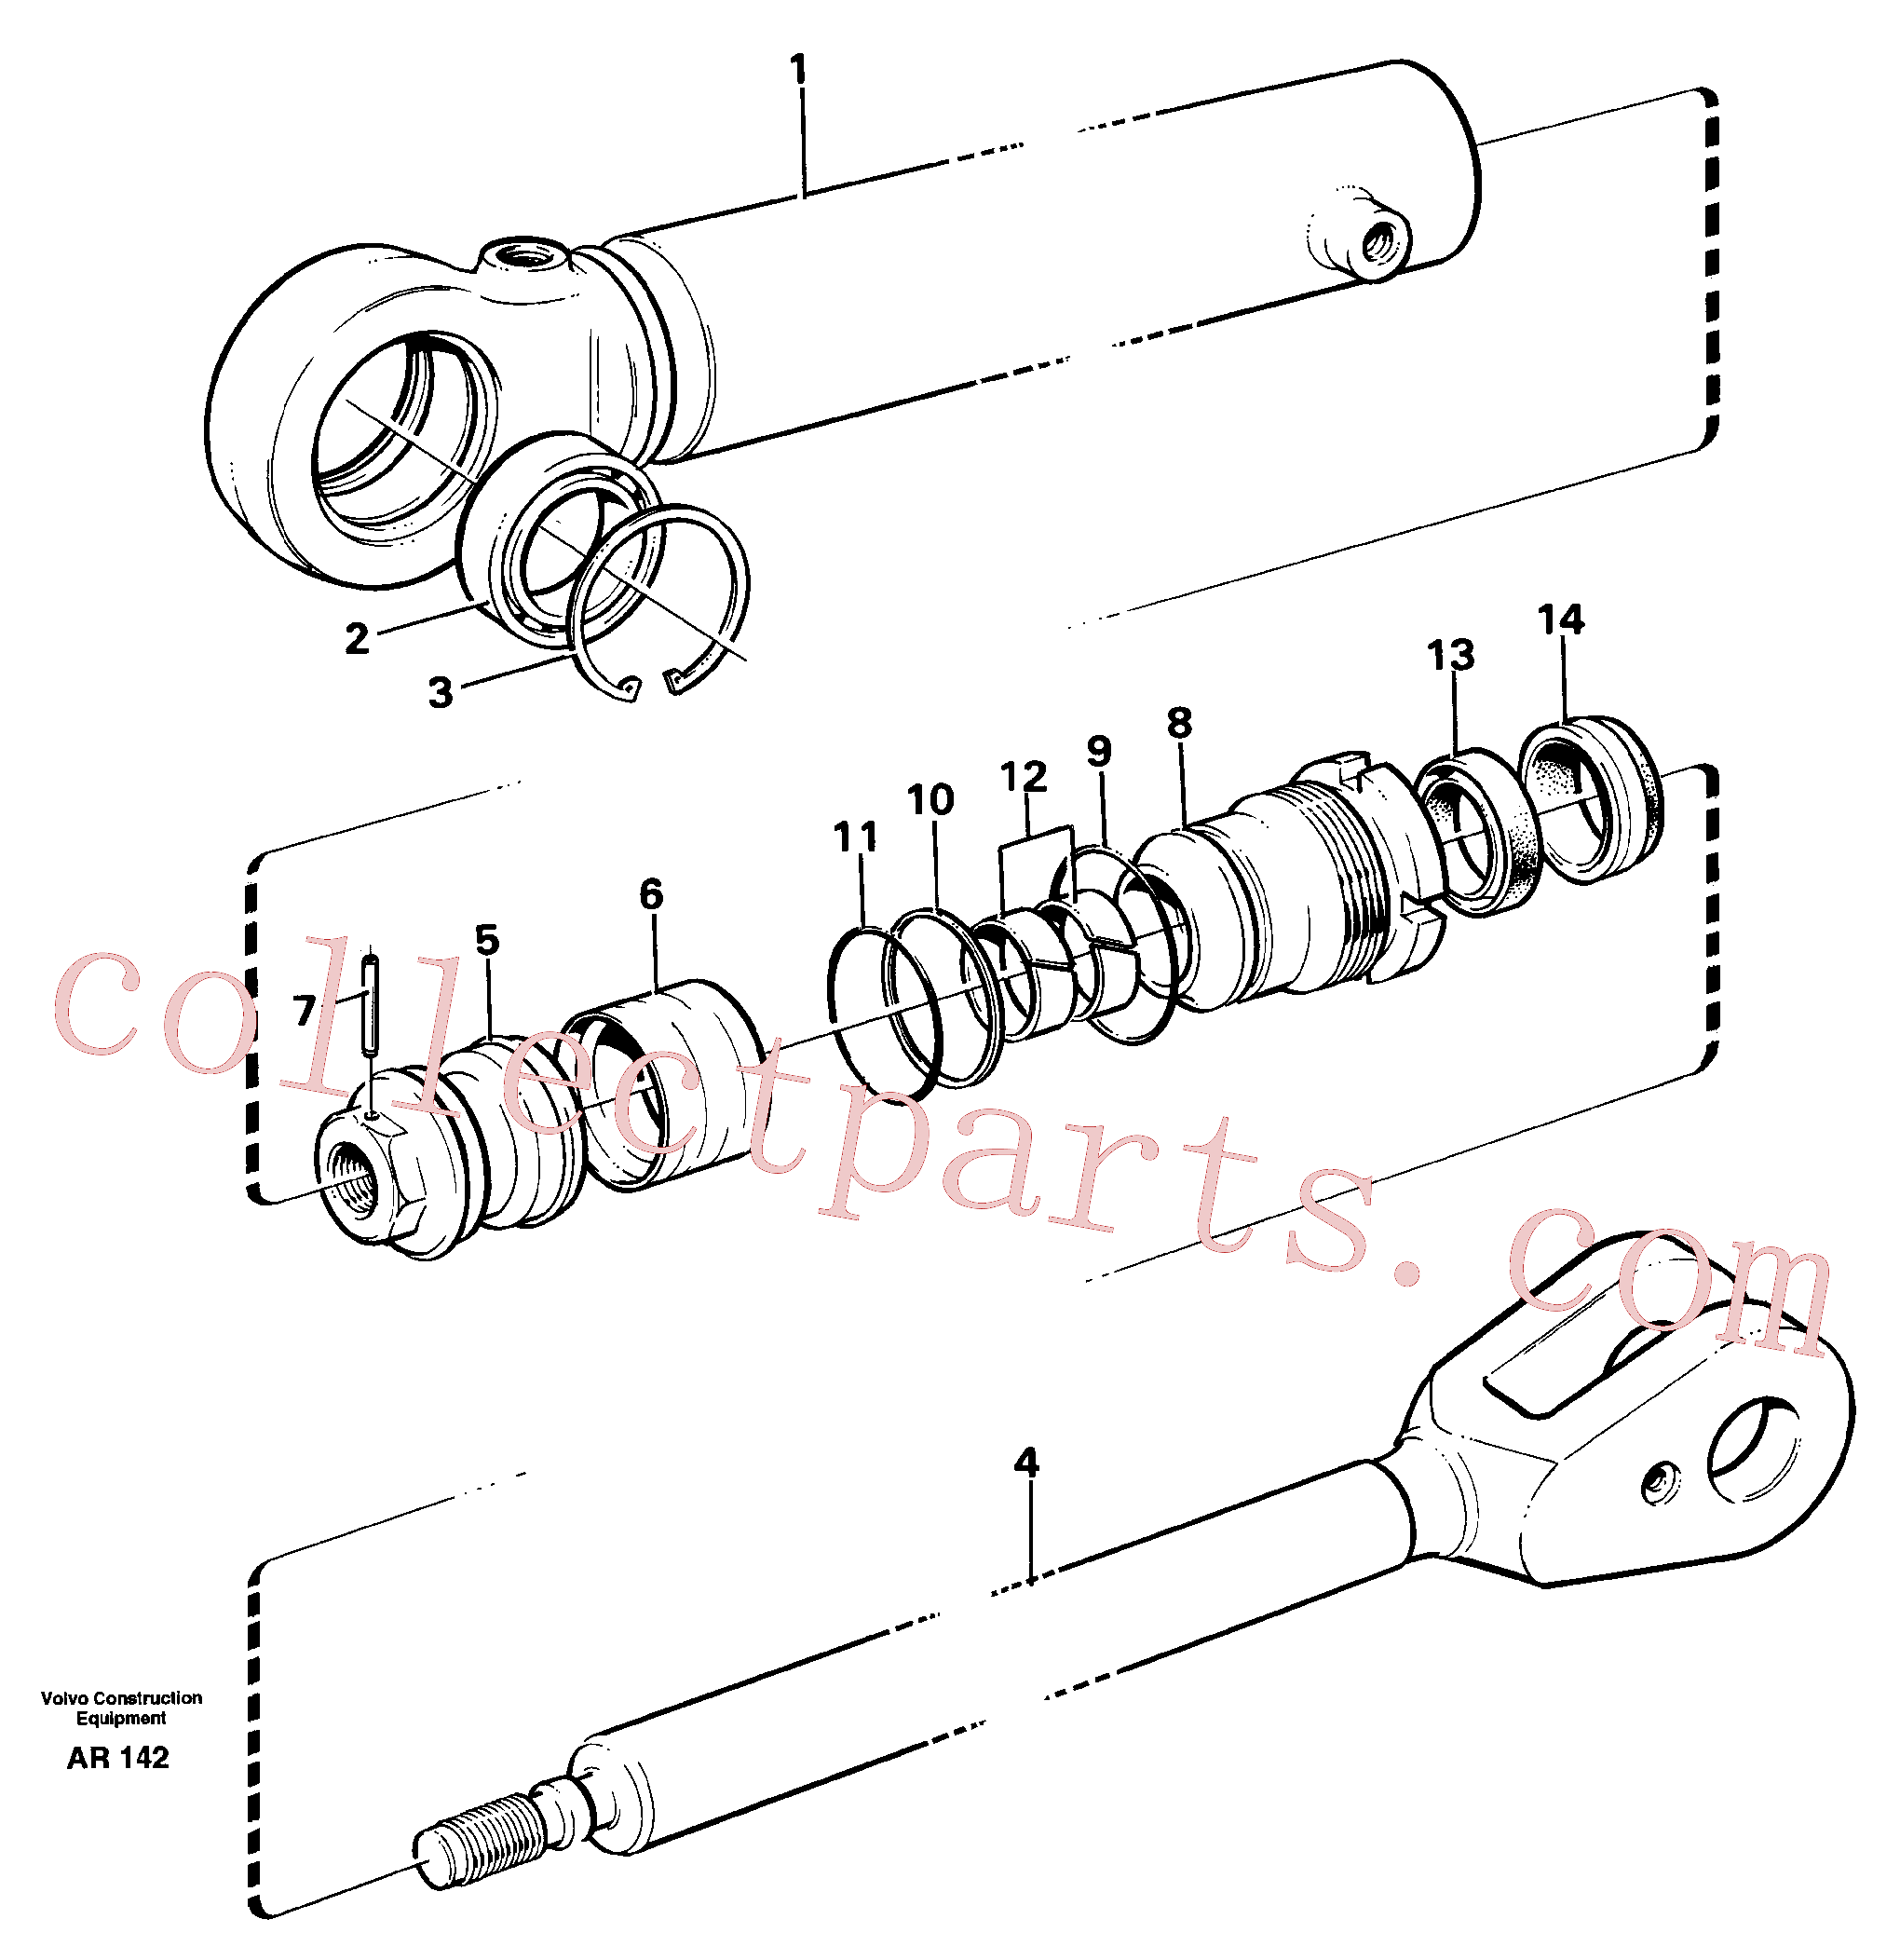 VOE11704196 for Volvo Hydraulic cylinder(AR142 assembly)